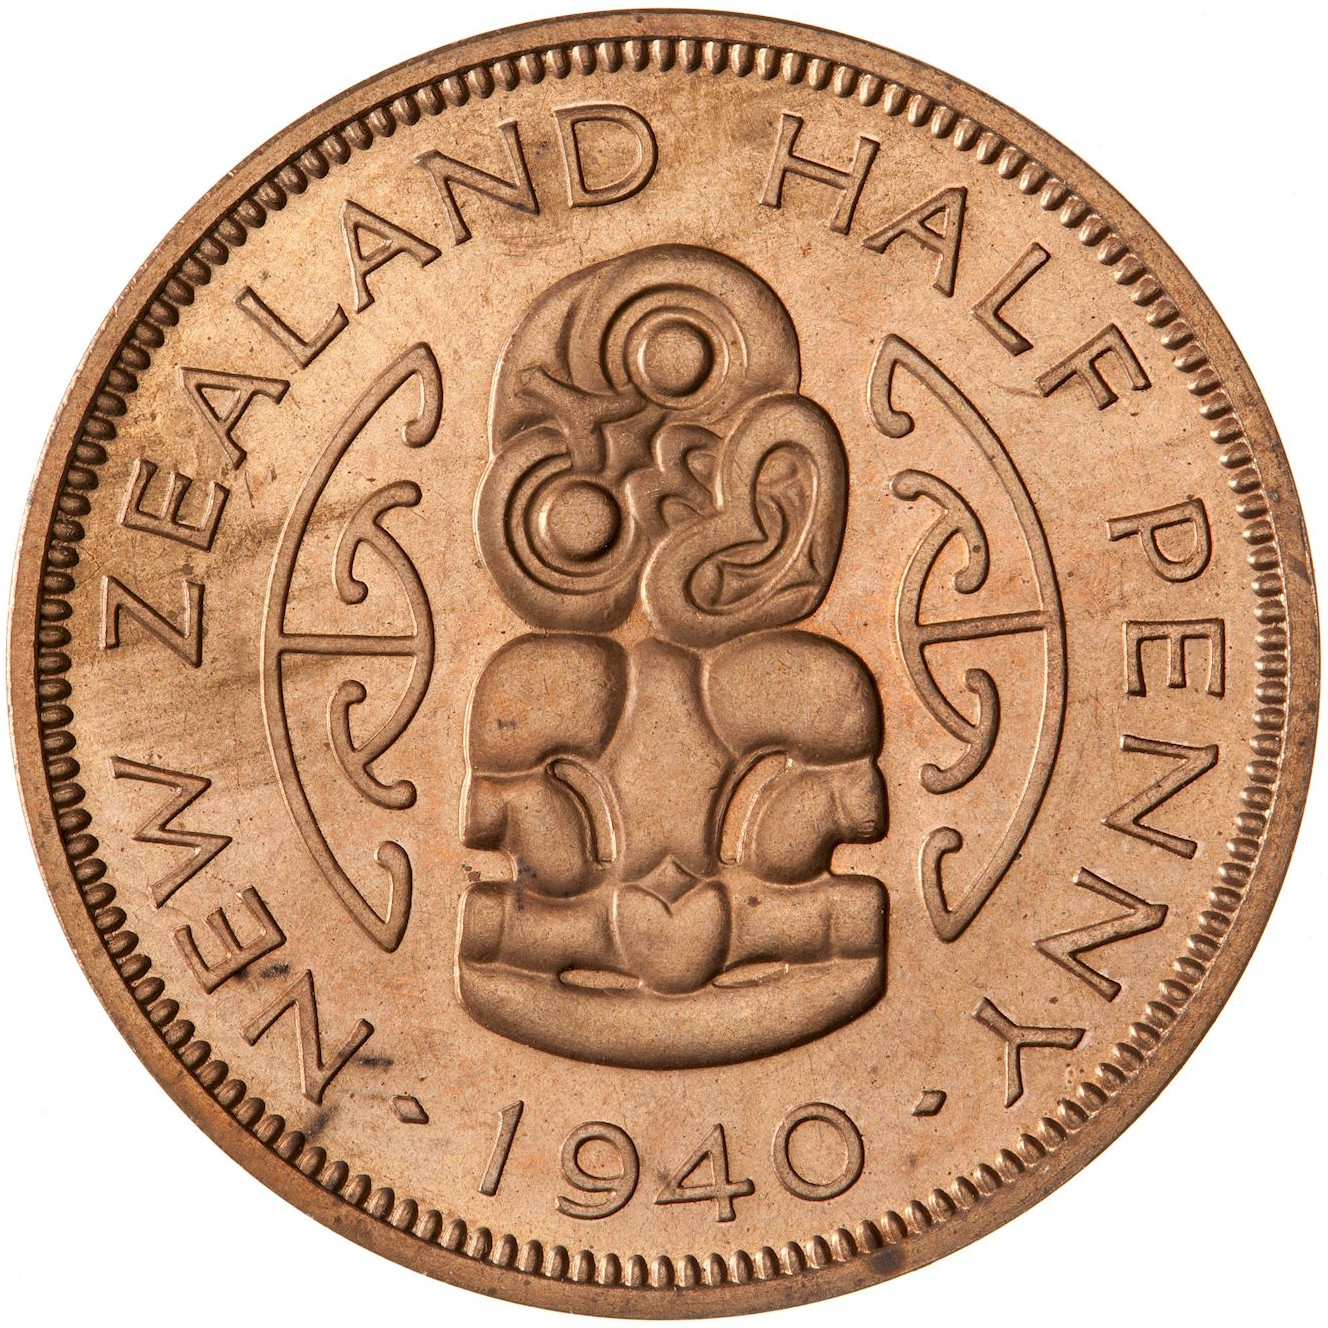 Halfpenny 1940, Coin from New Zealand - Online Coin Club